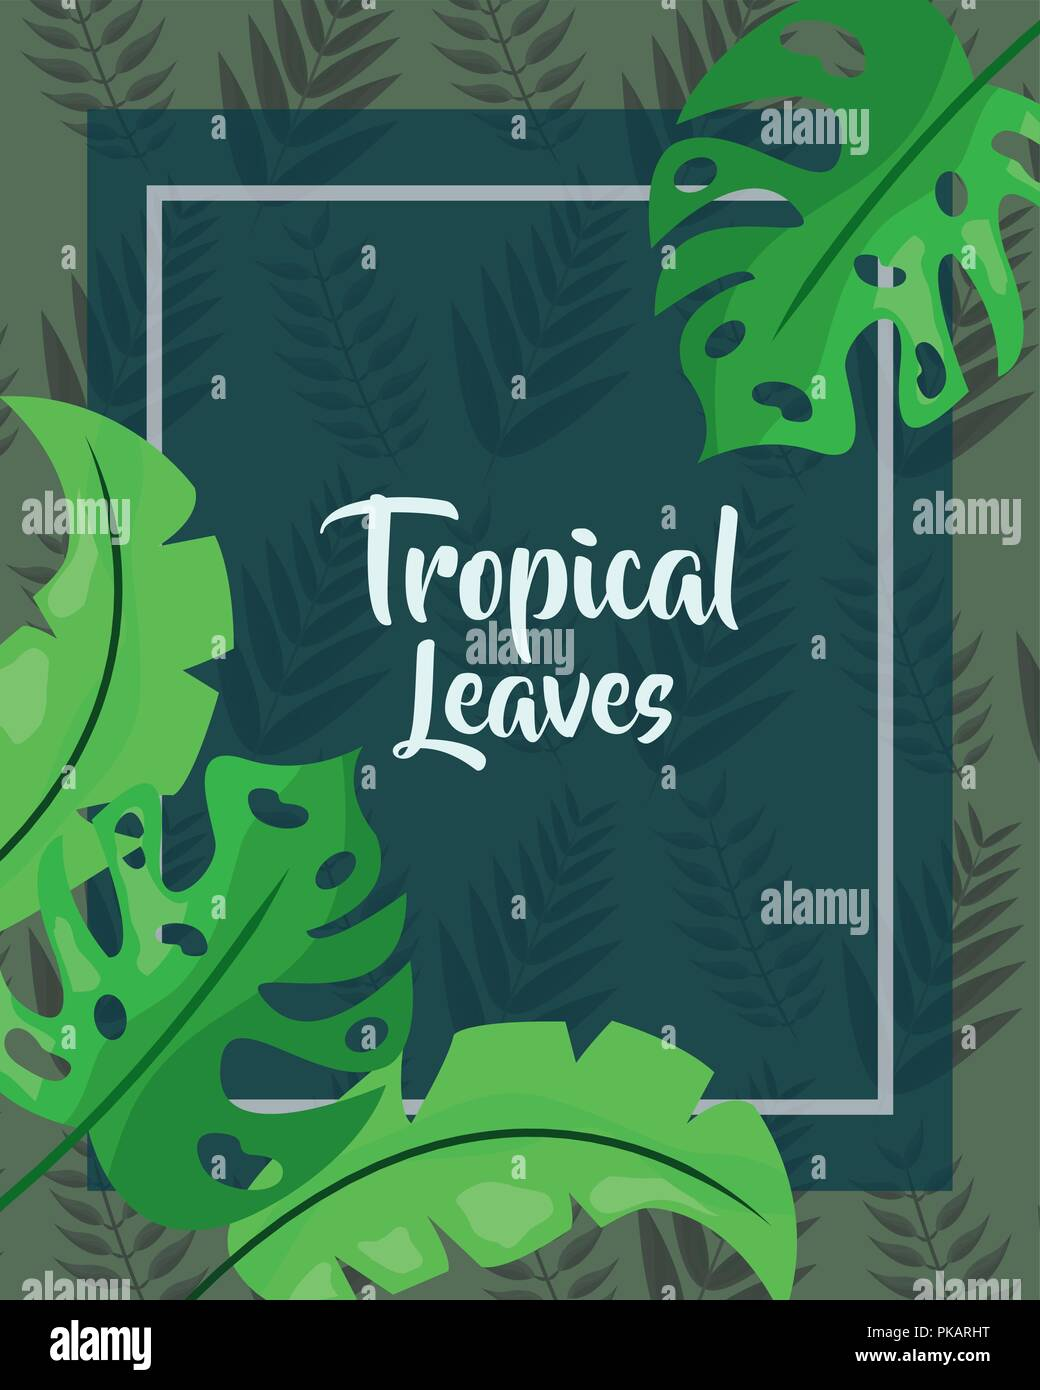 Green Cover Monstera Foliage Tropical Leaves Vector Illustration Stock Vector Image Art Alamy Tropical leaves and flowers doodles drawing ideas/ bullet journal dood. alamy